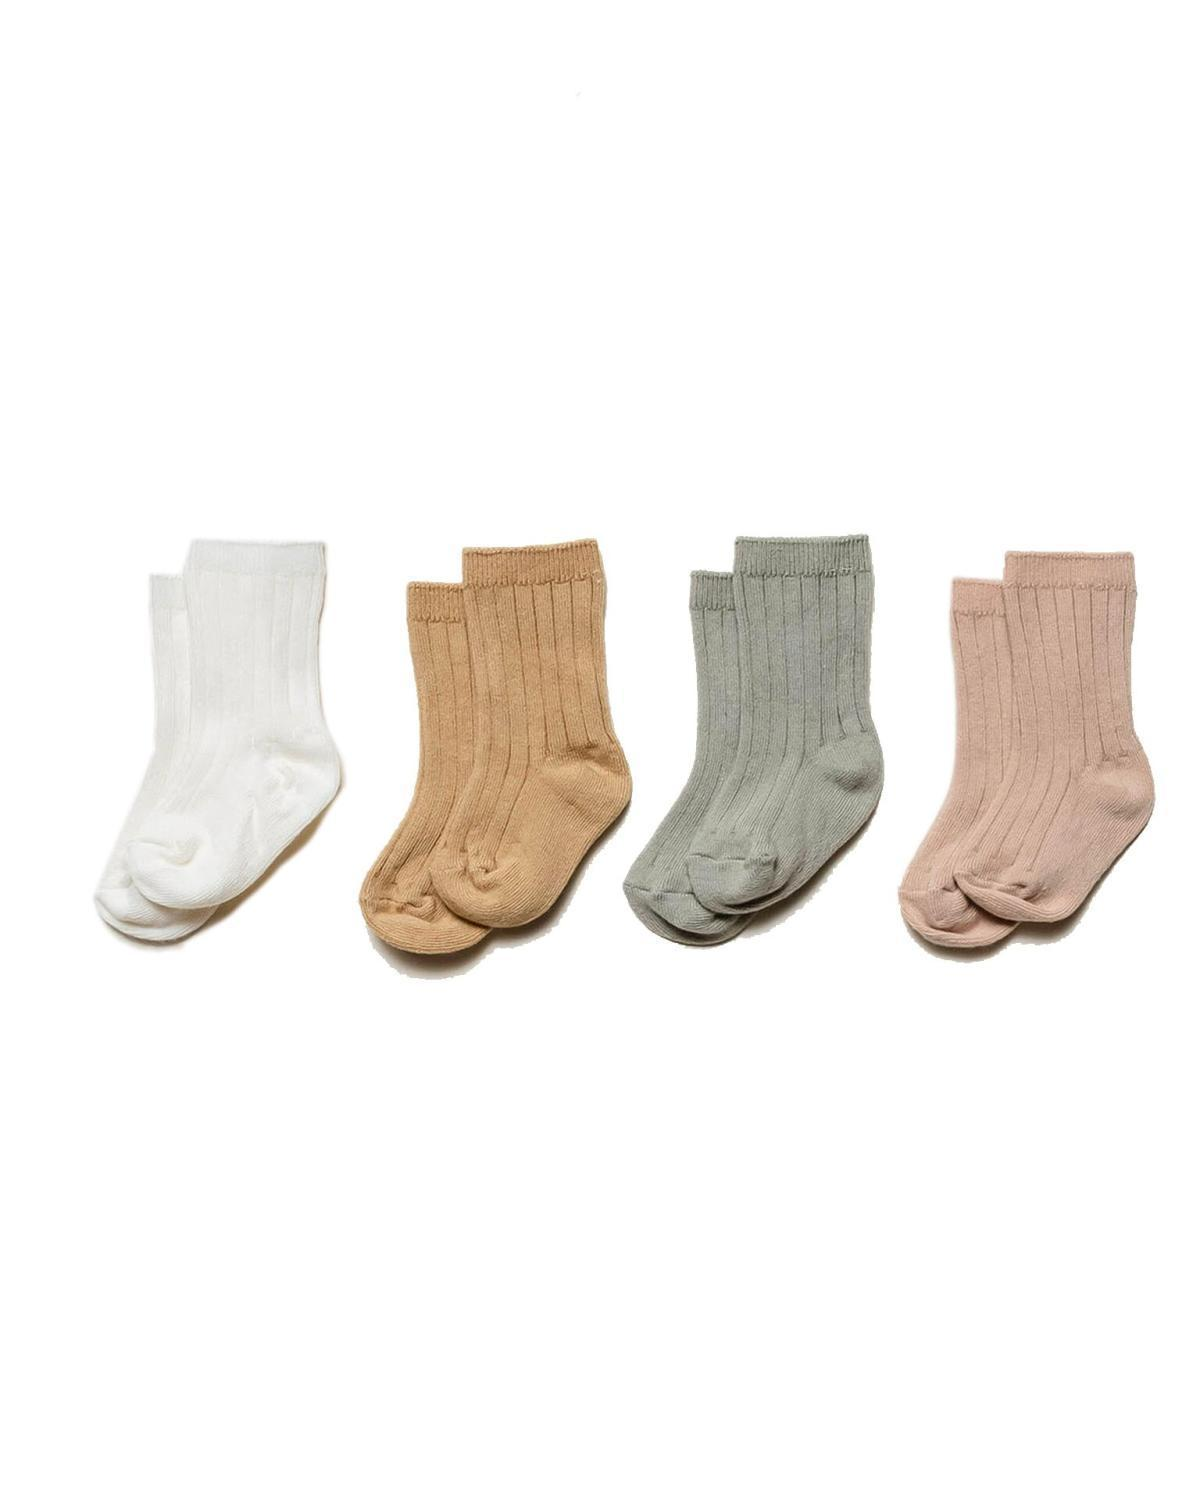 239339b27 Little quincy mae accessories 0-6 baby socks 4 pack in ivory, sage, ...